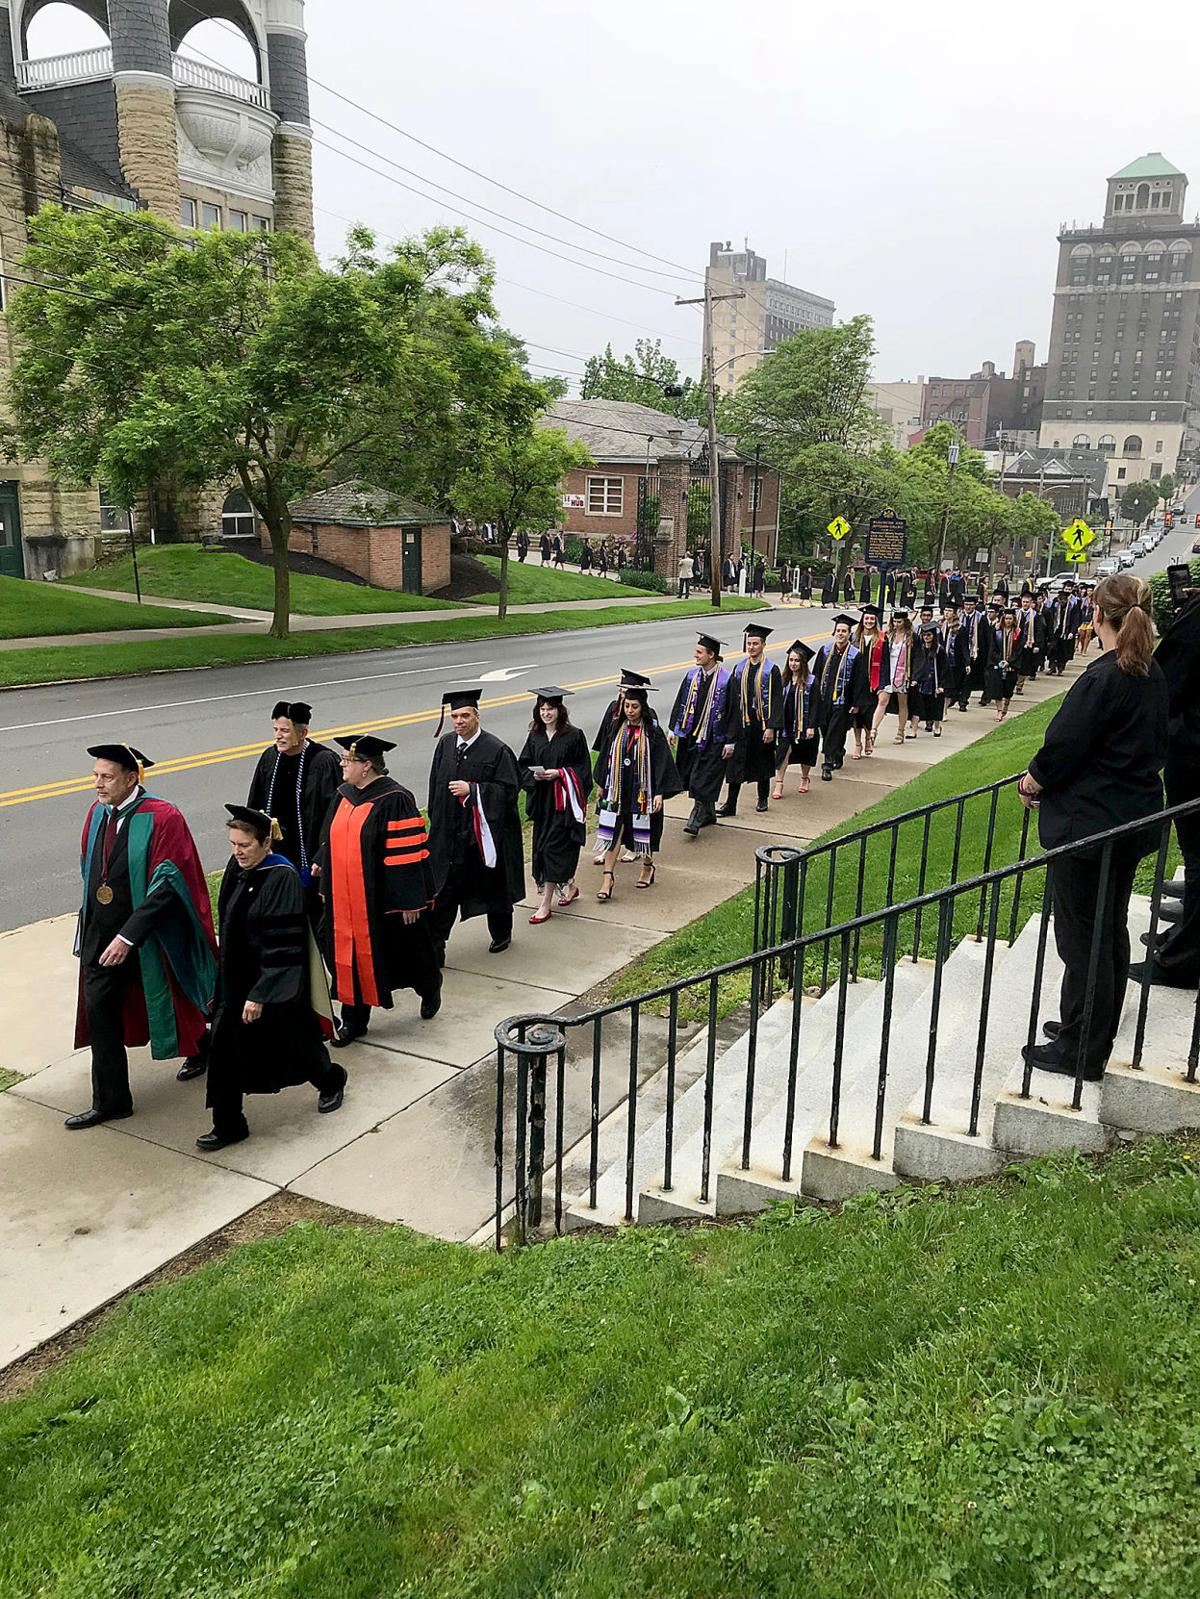 More than 300 graduate from W&J College Saturday